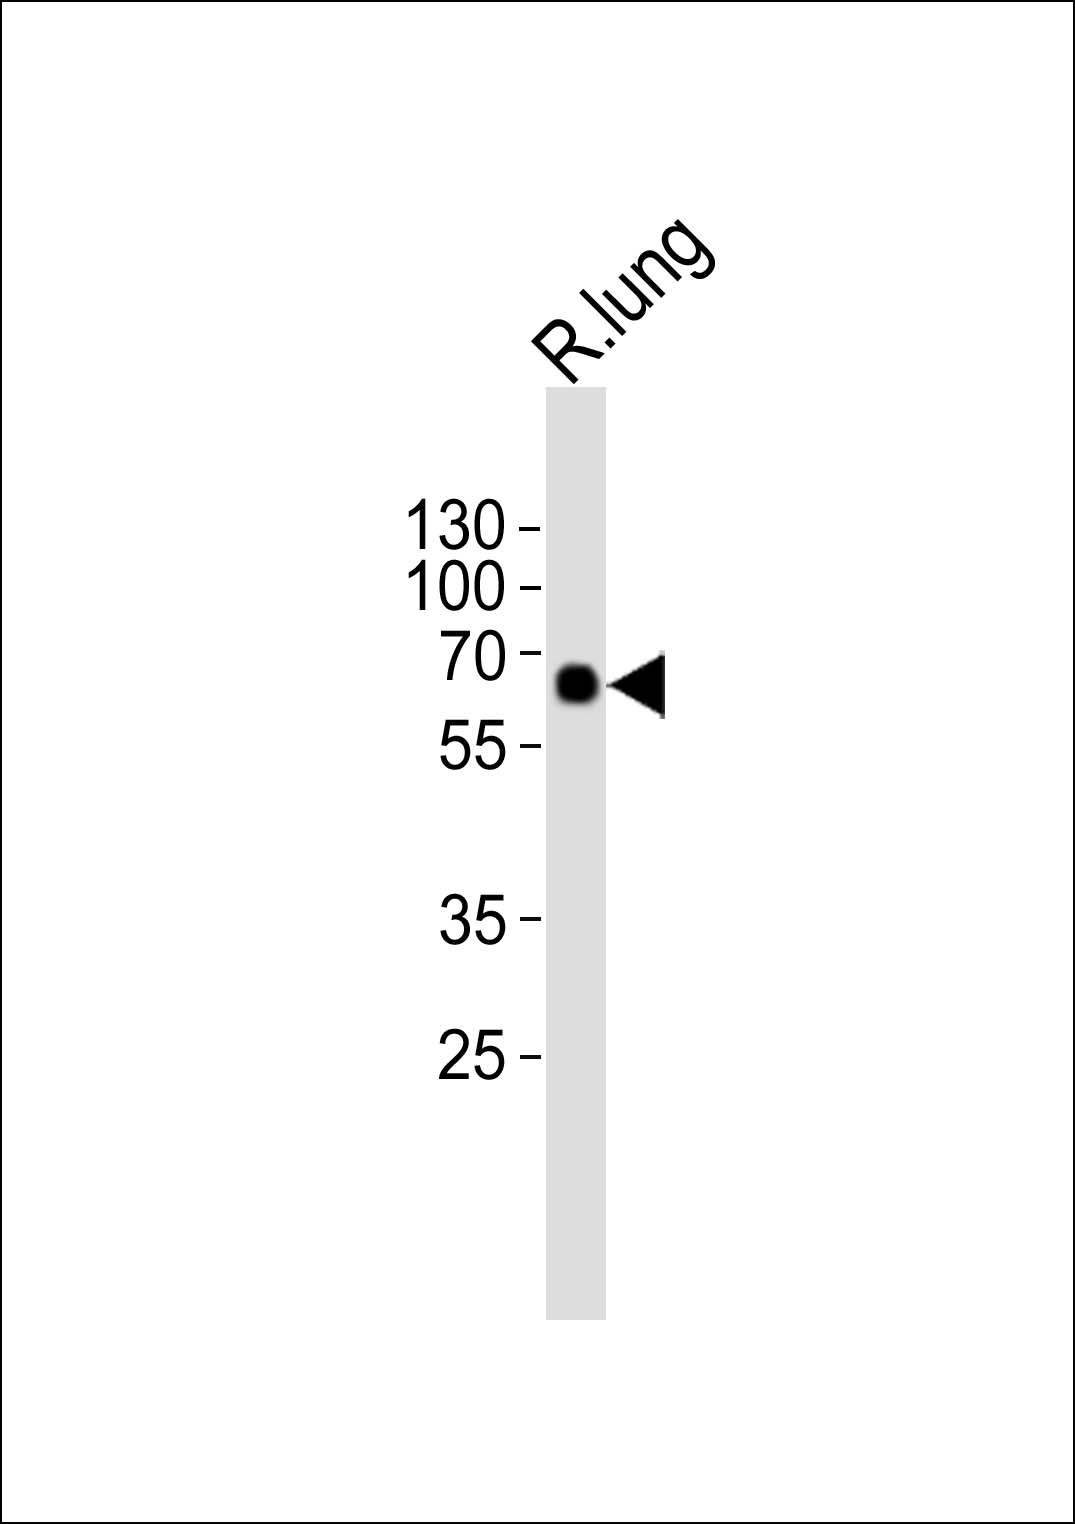 1 - SMAD1 Antibody (Center) AP21003a